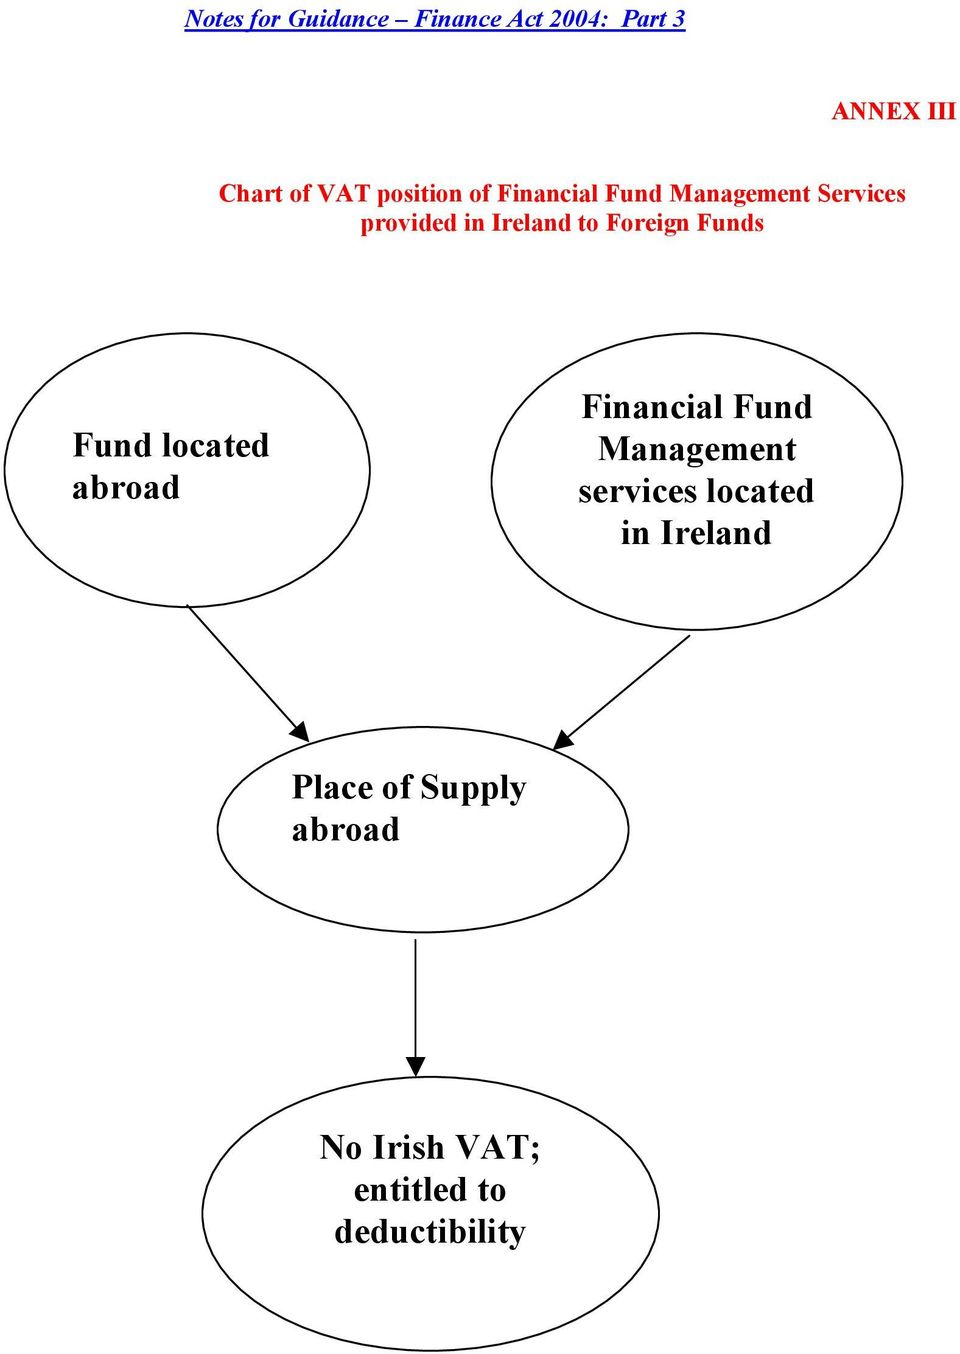 abroad Financial Fund Management services located in Ireland